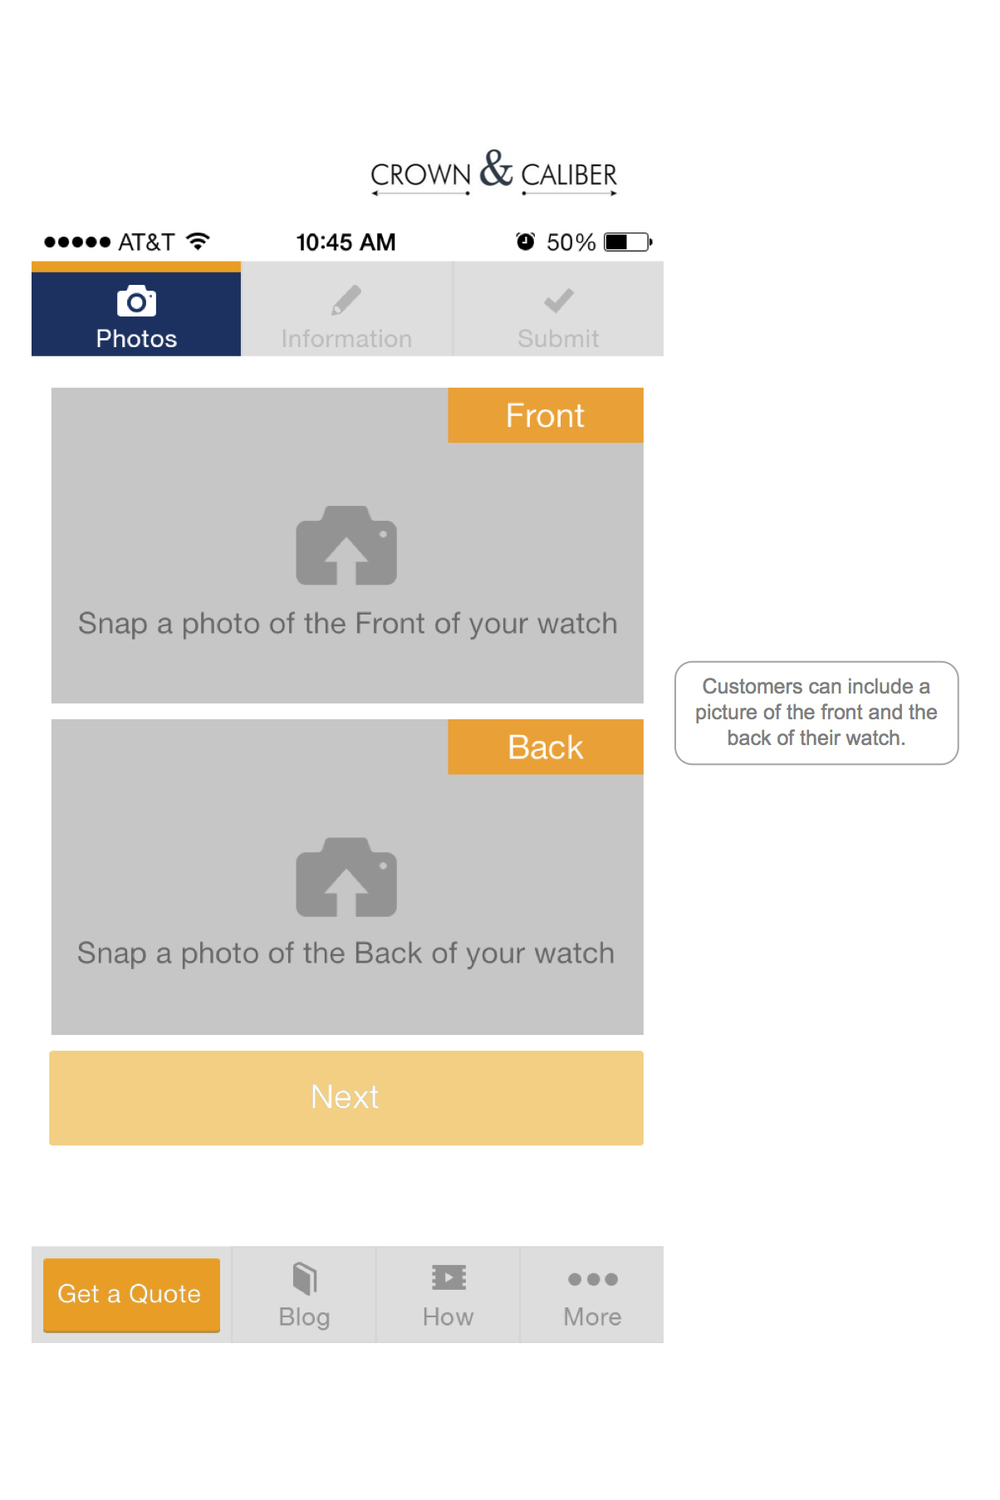 The new app allows you to easily upload photos of your watch with your smartphone's camera.